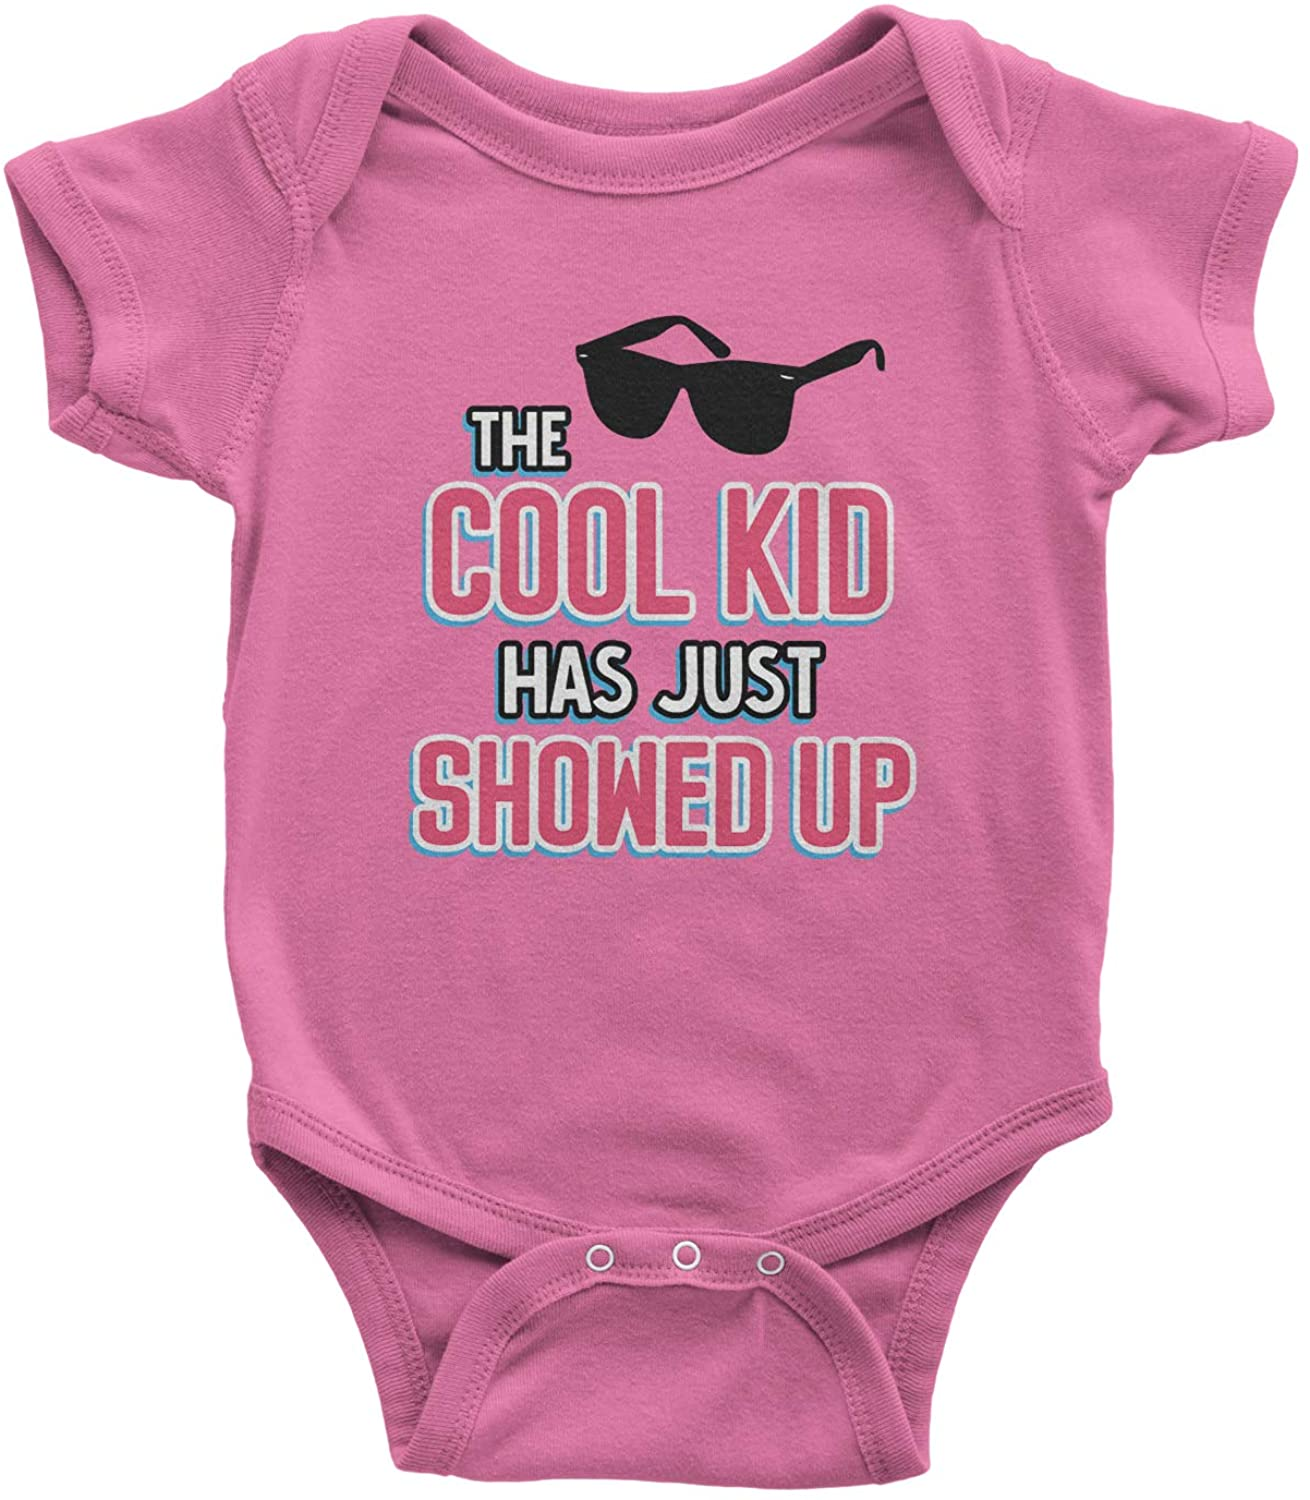 Expression Tees The Cool Kid Has Just Showed Up Infant One-Piece Romper Bodysuit